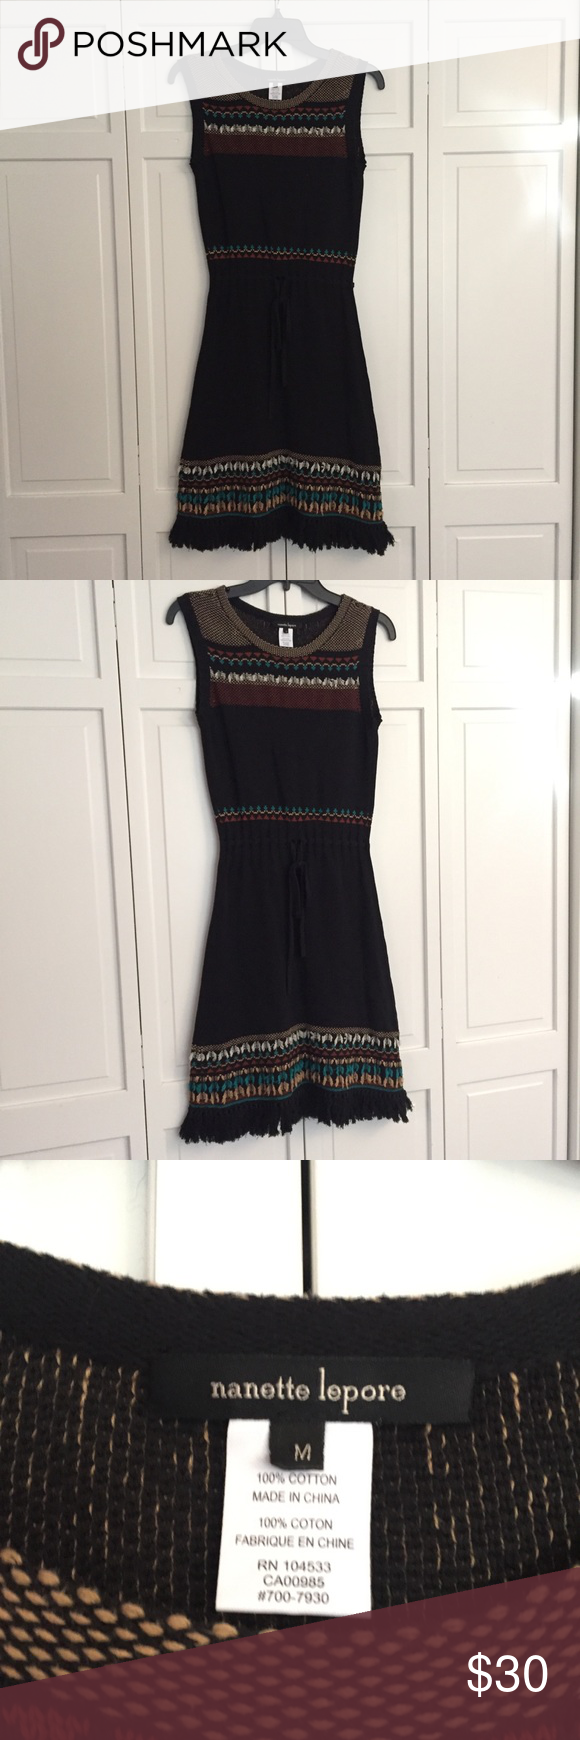 Nanette Lepore Knit Embroidered Dress Size M Knit Black Fabric With Tie Waist And Embroidered Detail On N Embroidered Dress Nanette Lepore Dress Nanette Lepore